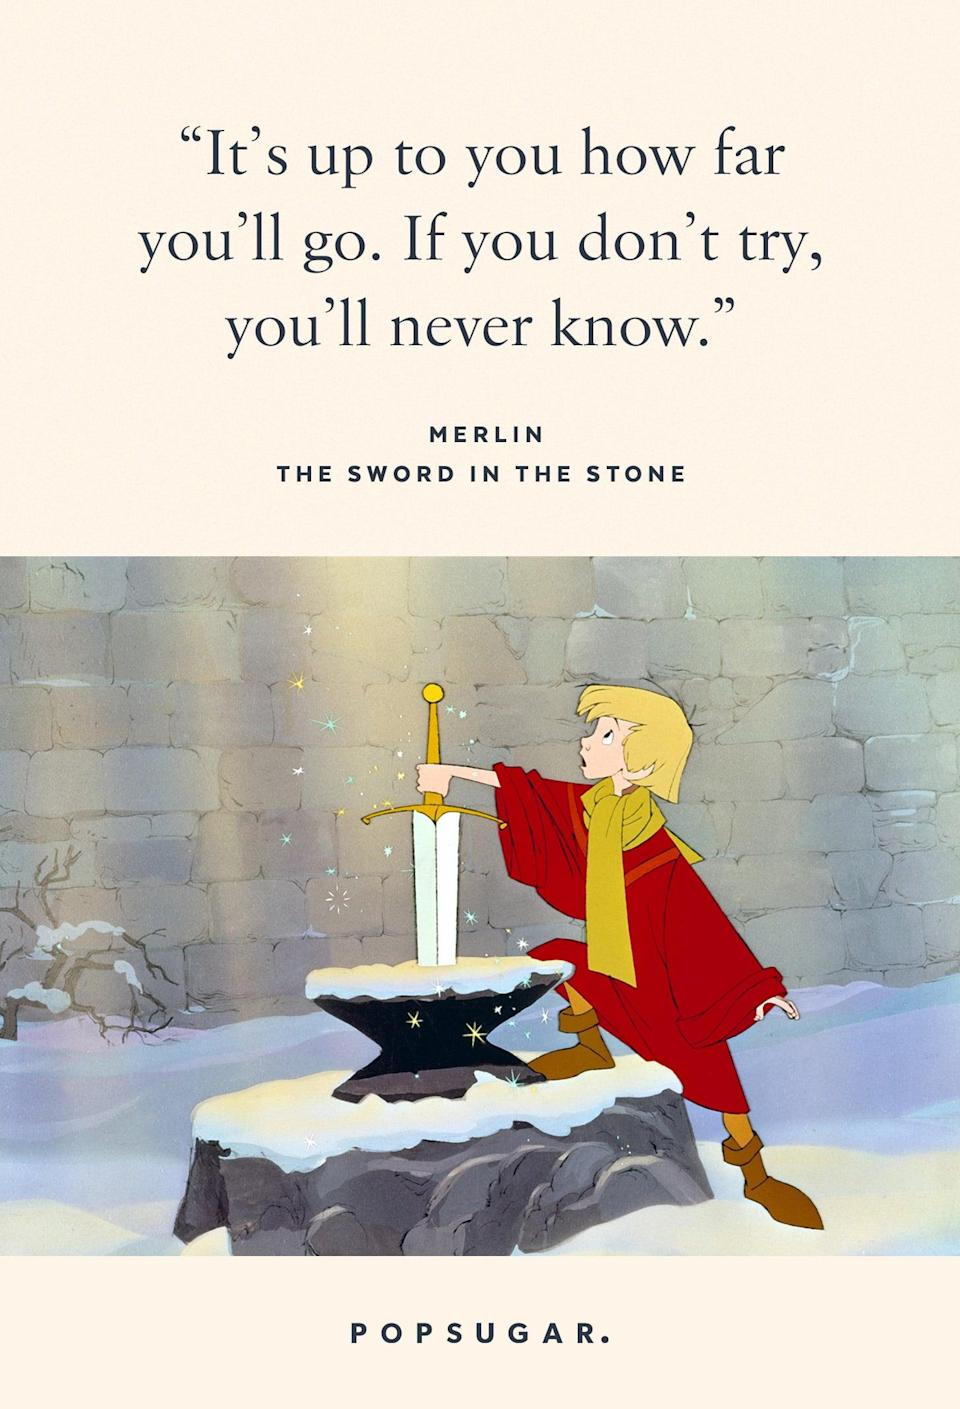 "<p>""It's up to you how far you'll go. If you don't try, you'll never know."" - Merlin, <b>The Sword in the Stone</b></p>"